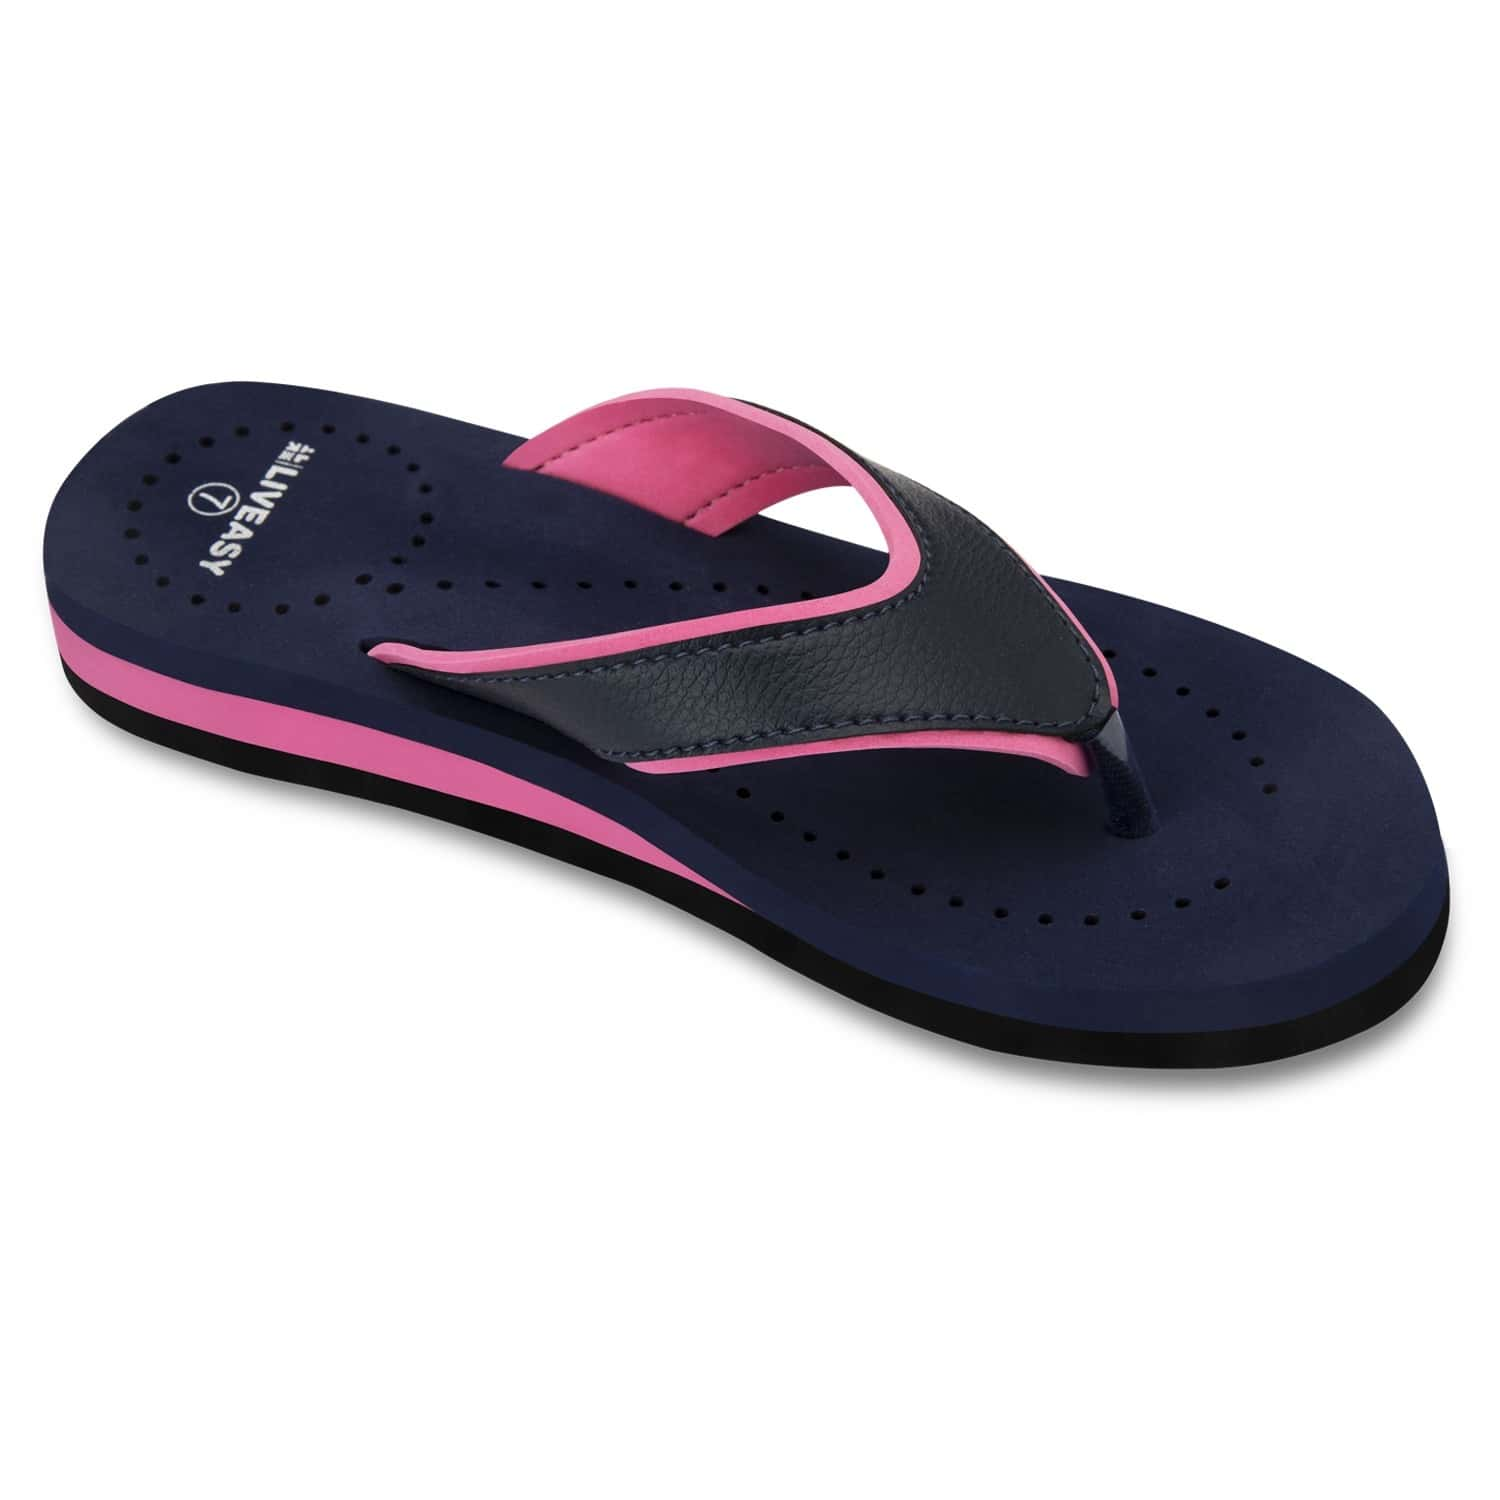 Liveasy Essentials Women's Diabetic & Orthopedic Slippers - Blue With Pink - Size Uk 8 / Us 11